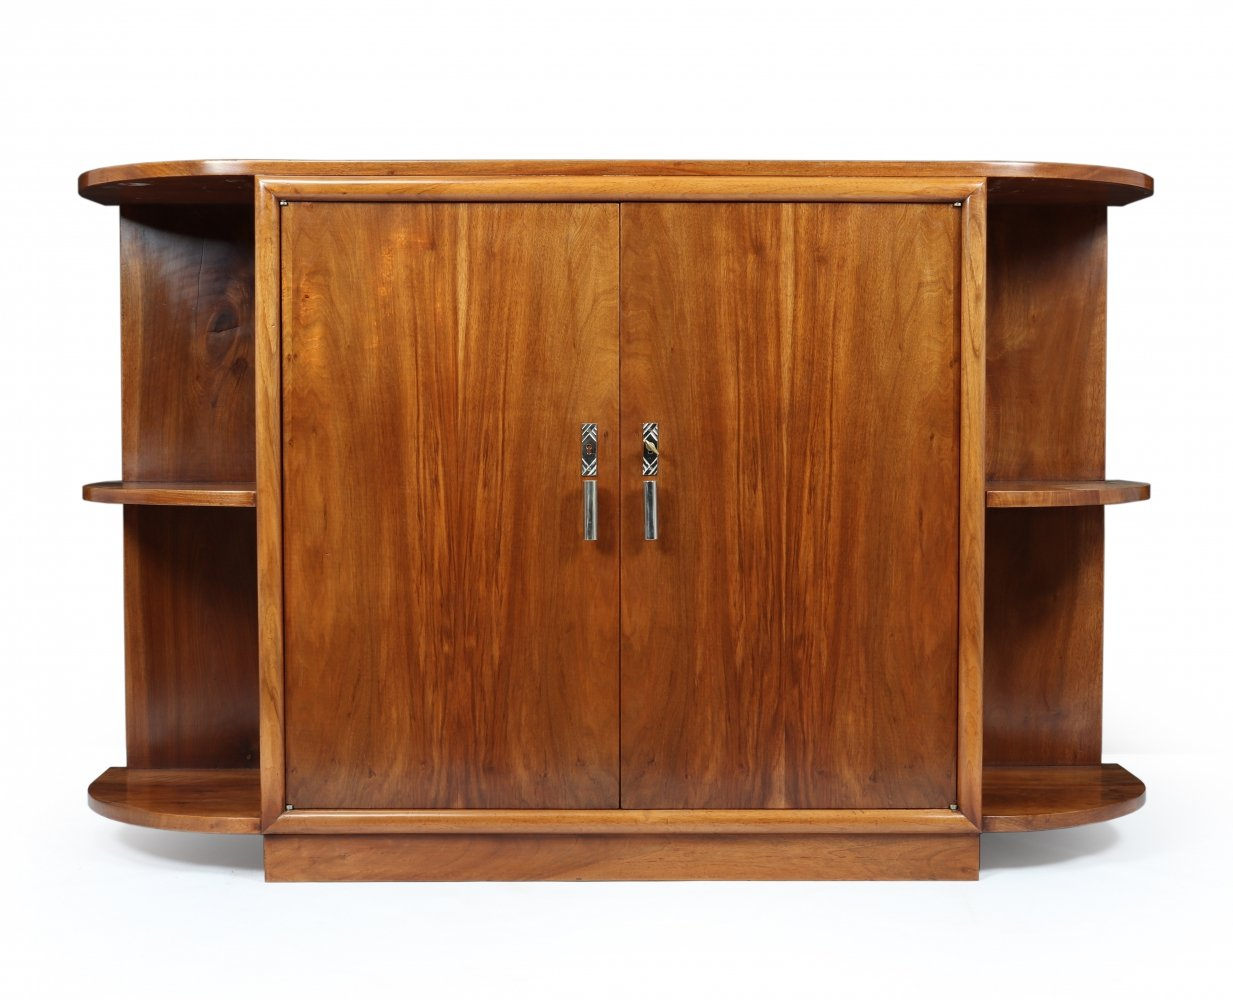 French Art Deco Walnut Sideboard, c1930